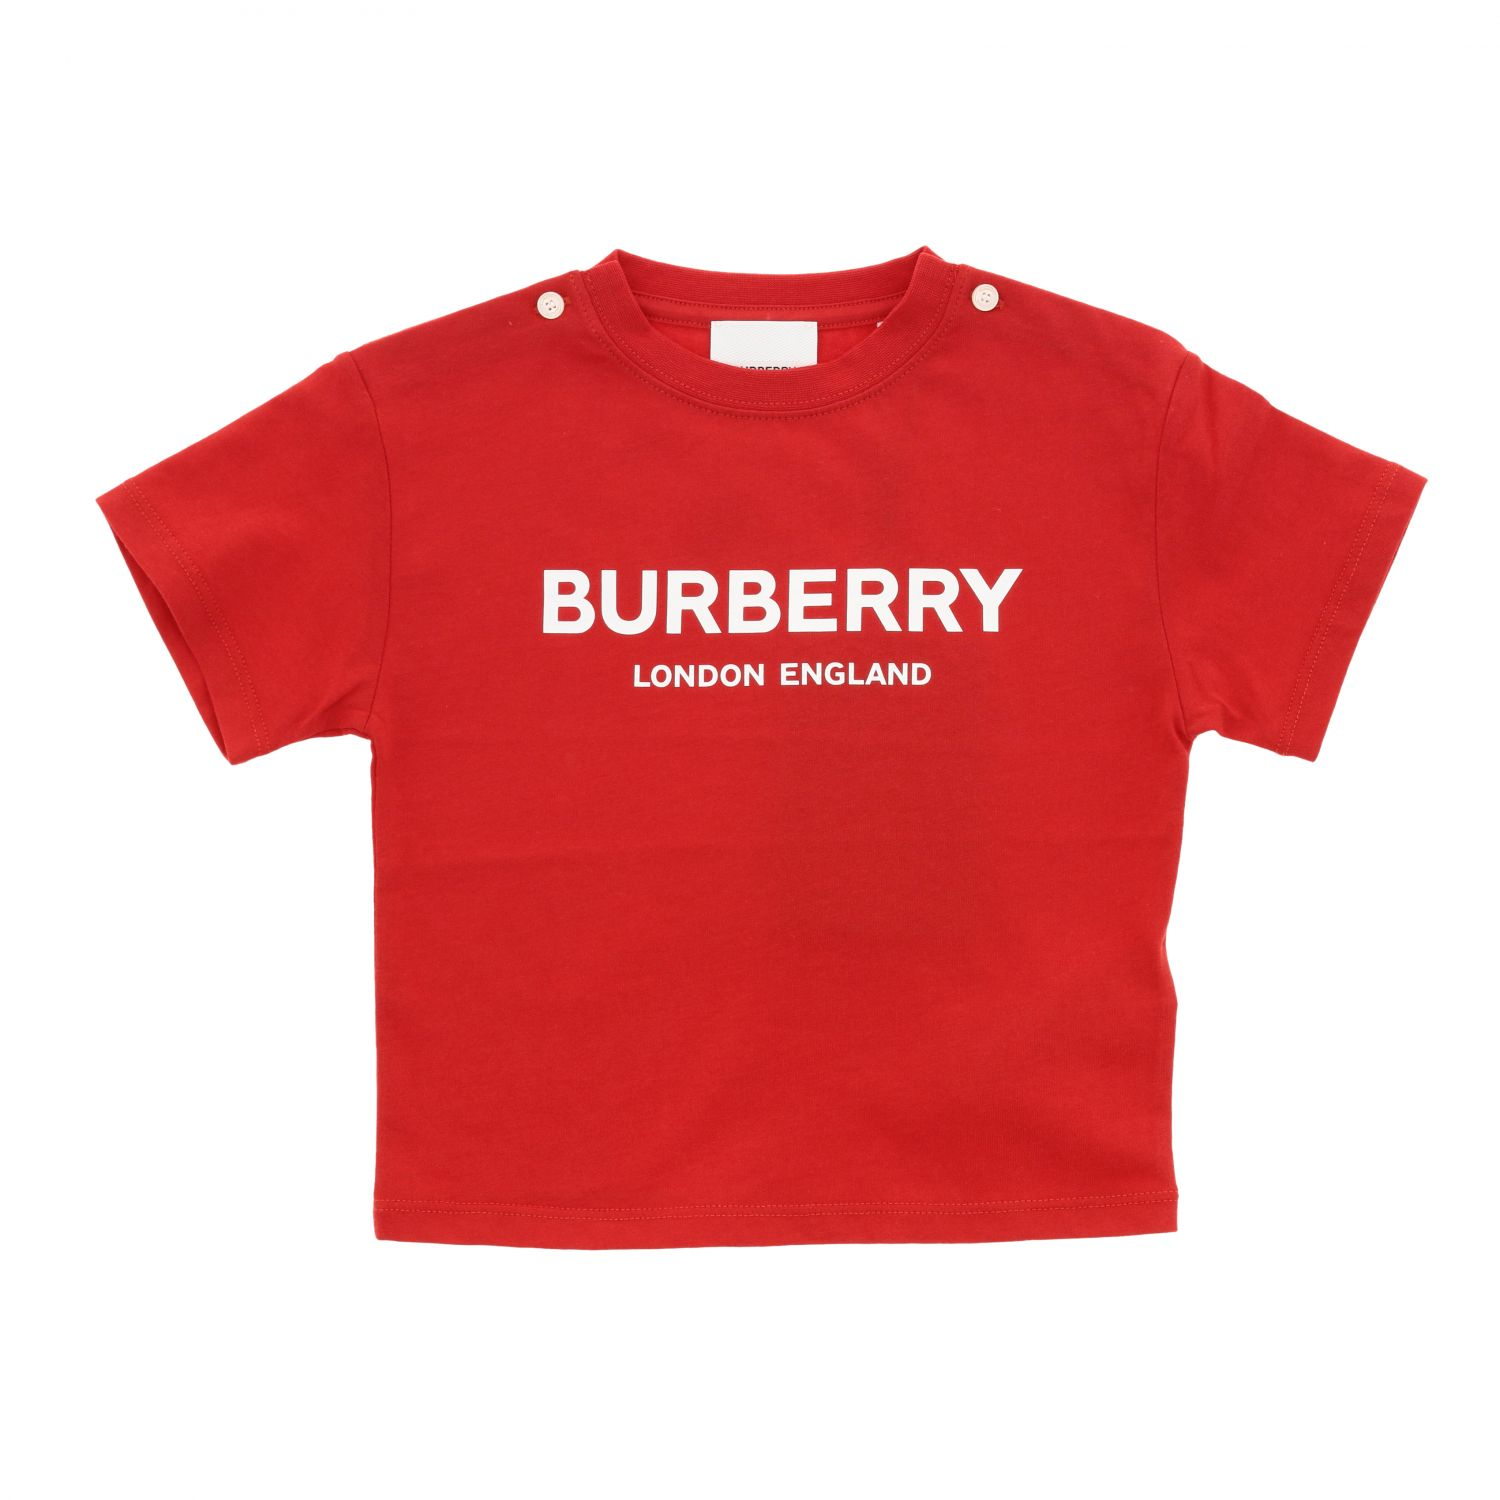 T-shirt Burberry Infant: T-shirt Burberry Infant a maniche corte con logo rosso 1